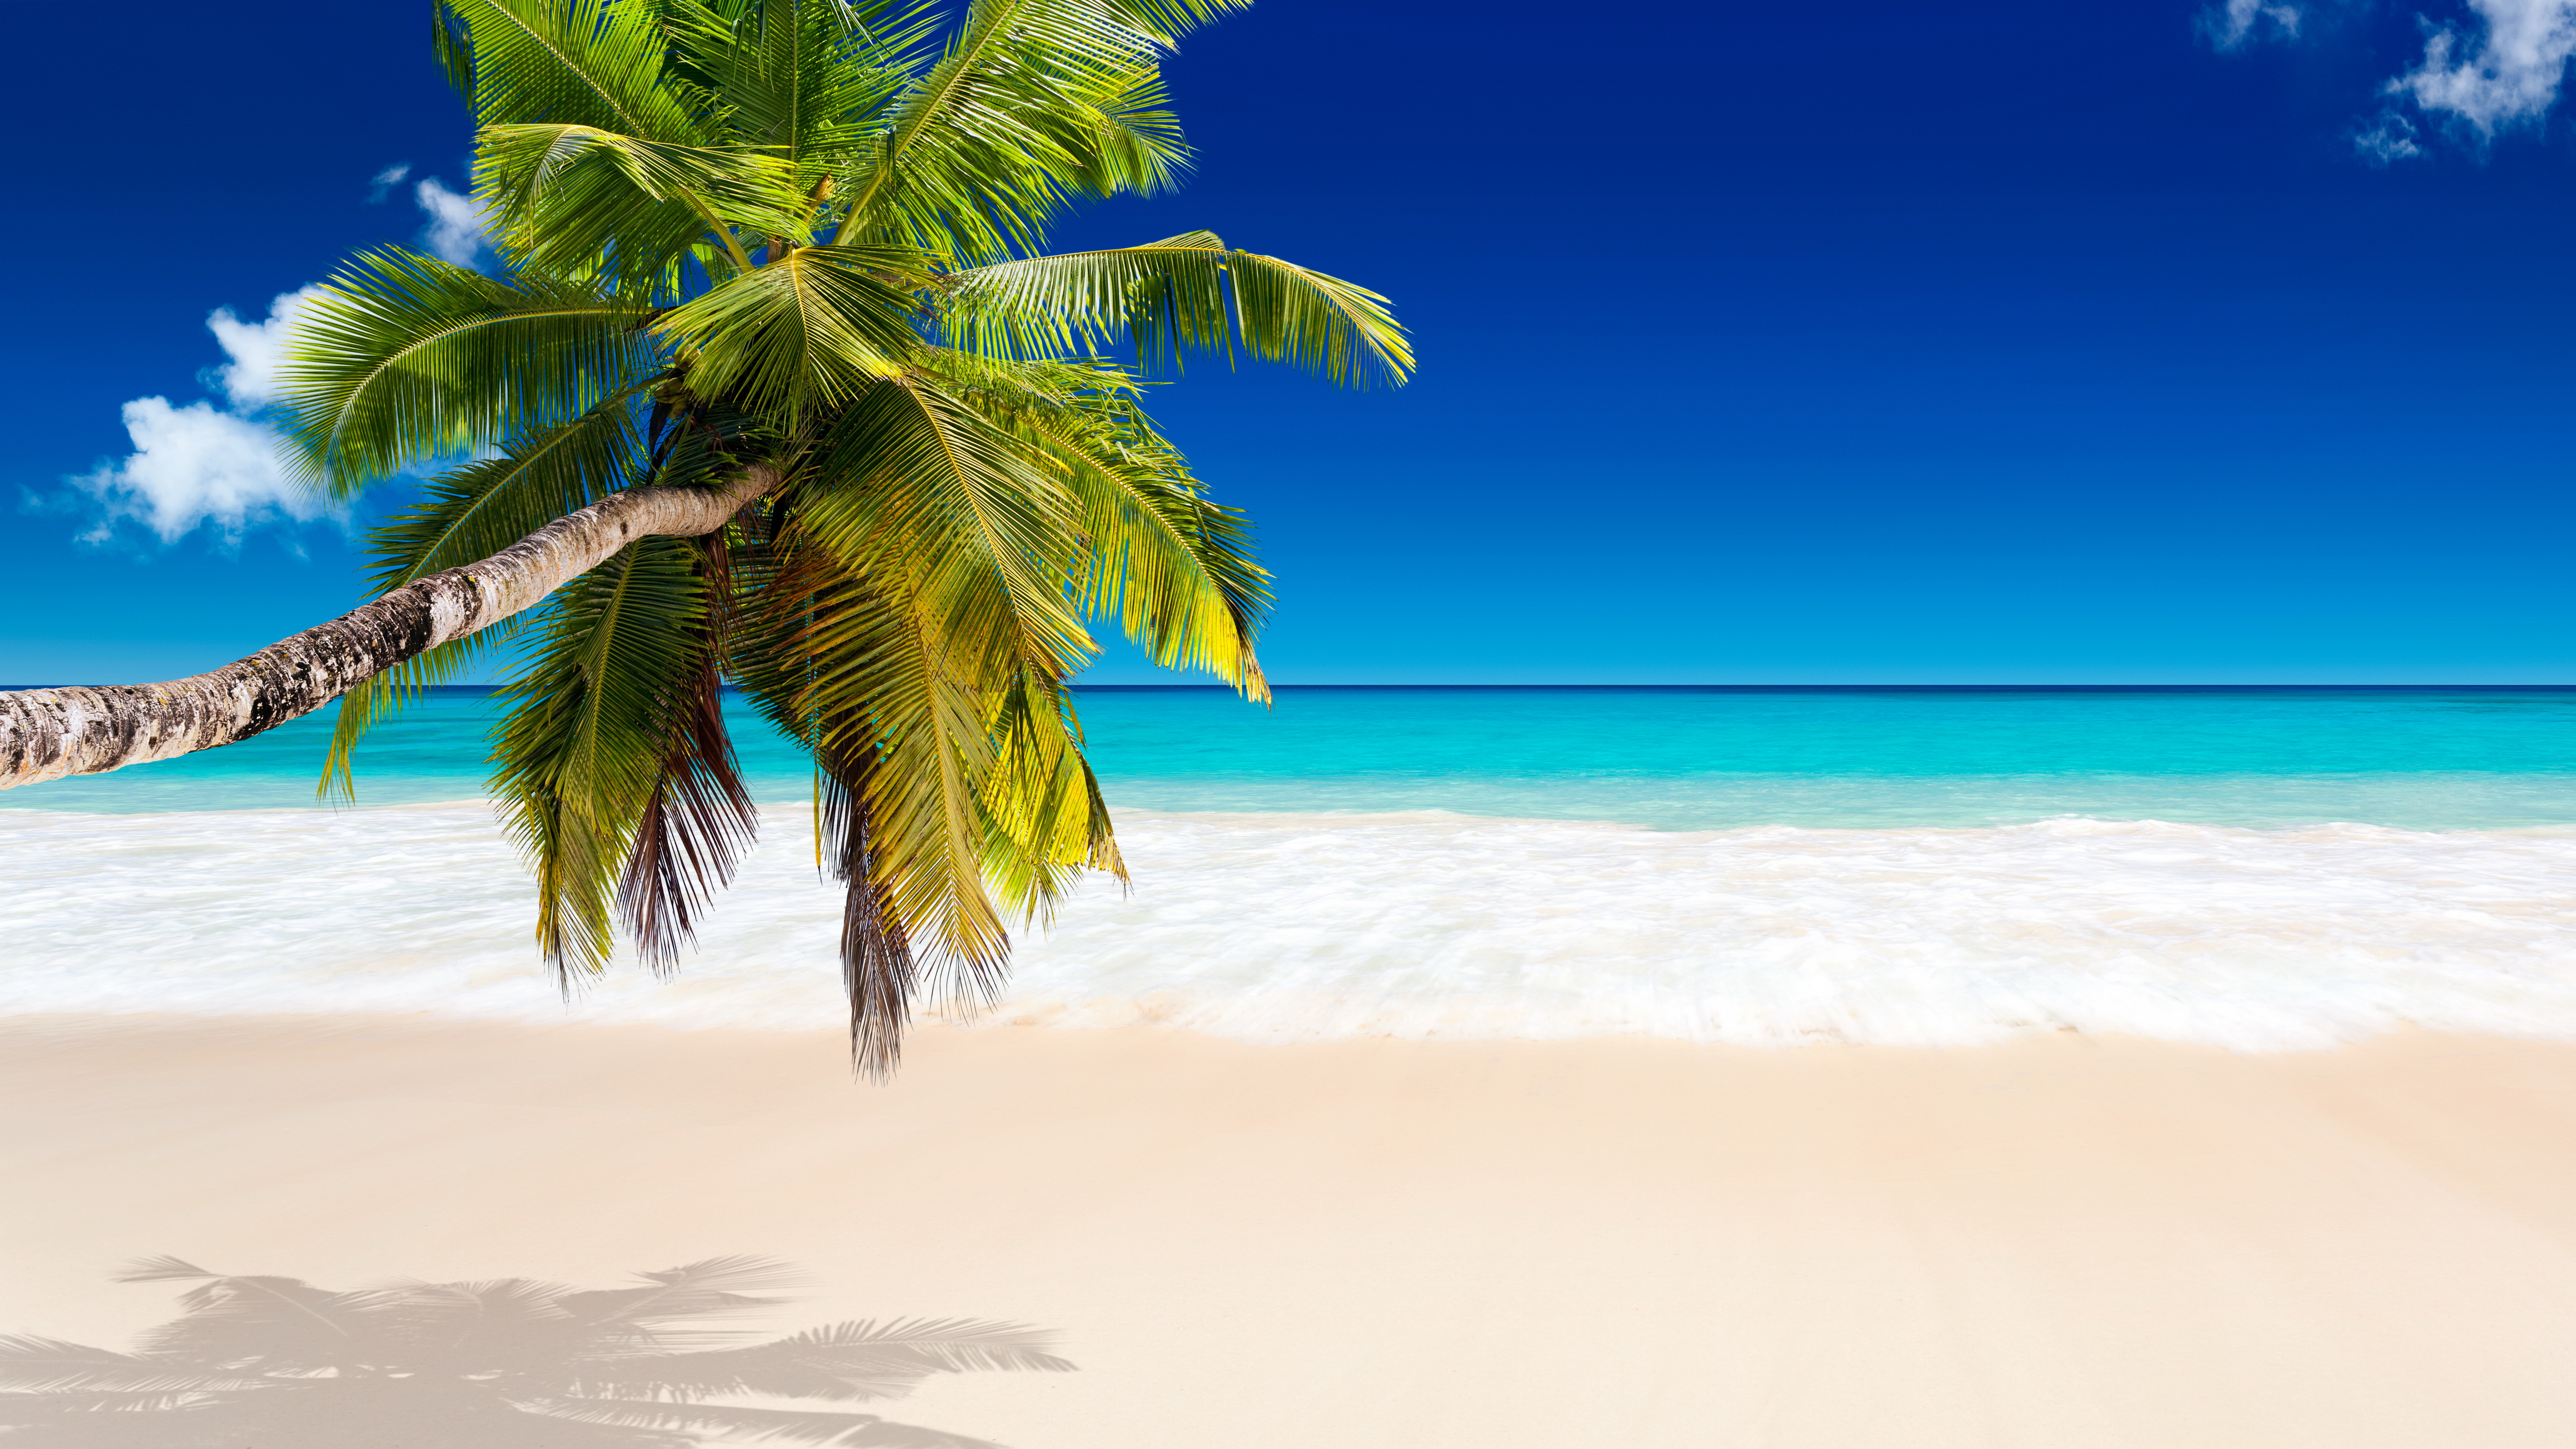 tropical_paradise_sea_palm_beach_sunshine_hd-wallpaper-1783677